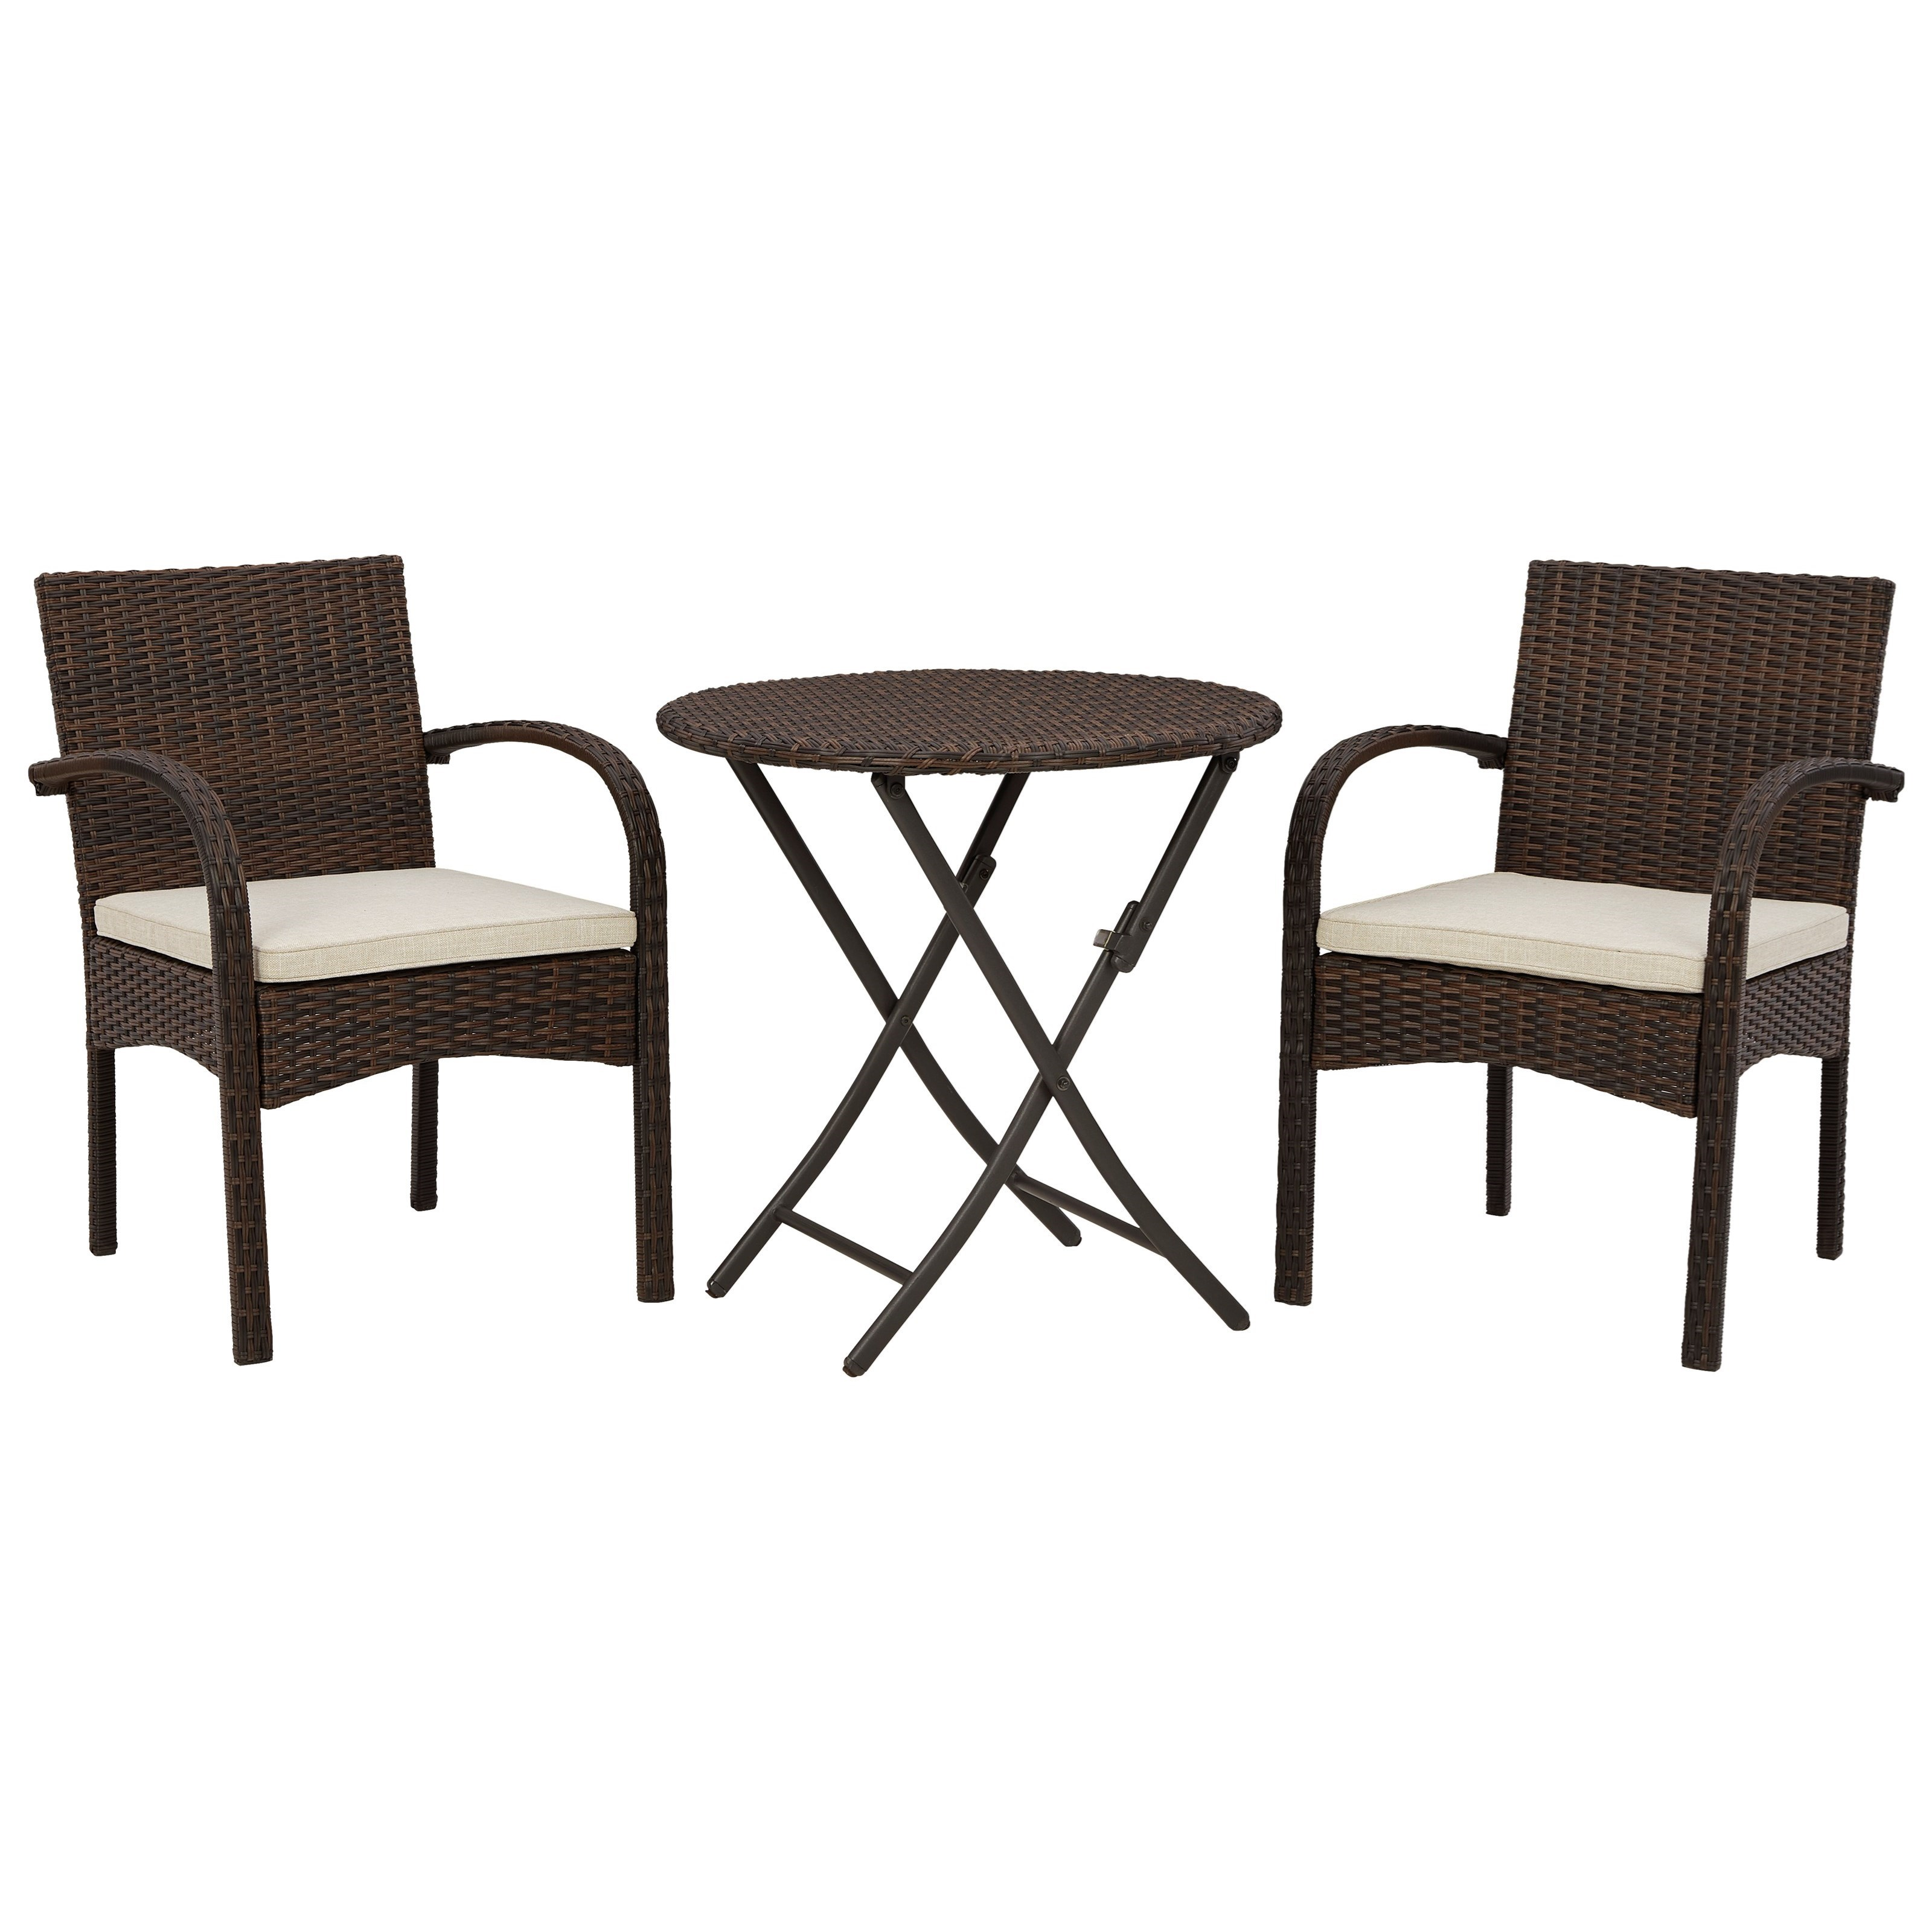 Anchor Lane 3-Piece Table & Chairs with Cushion Set by Signature Design by Ashley at Furniture and ApplianceMart